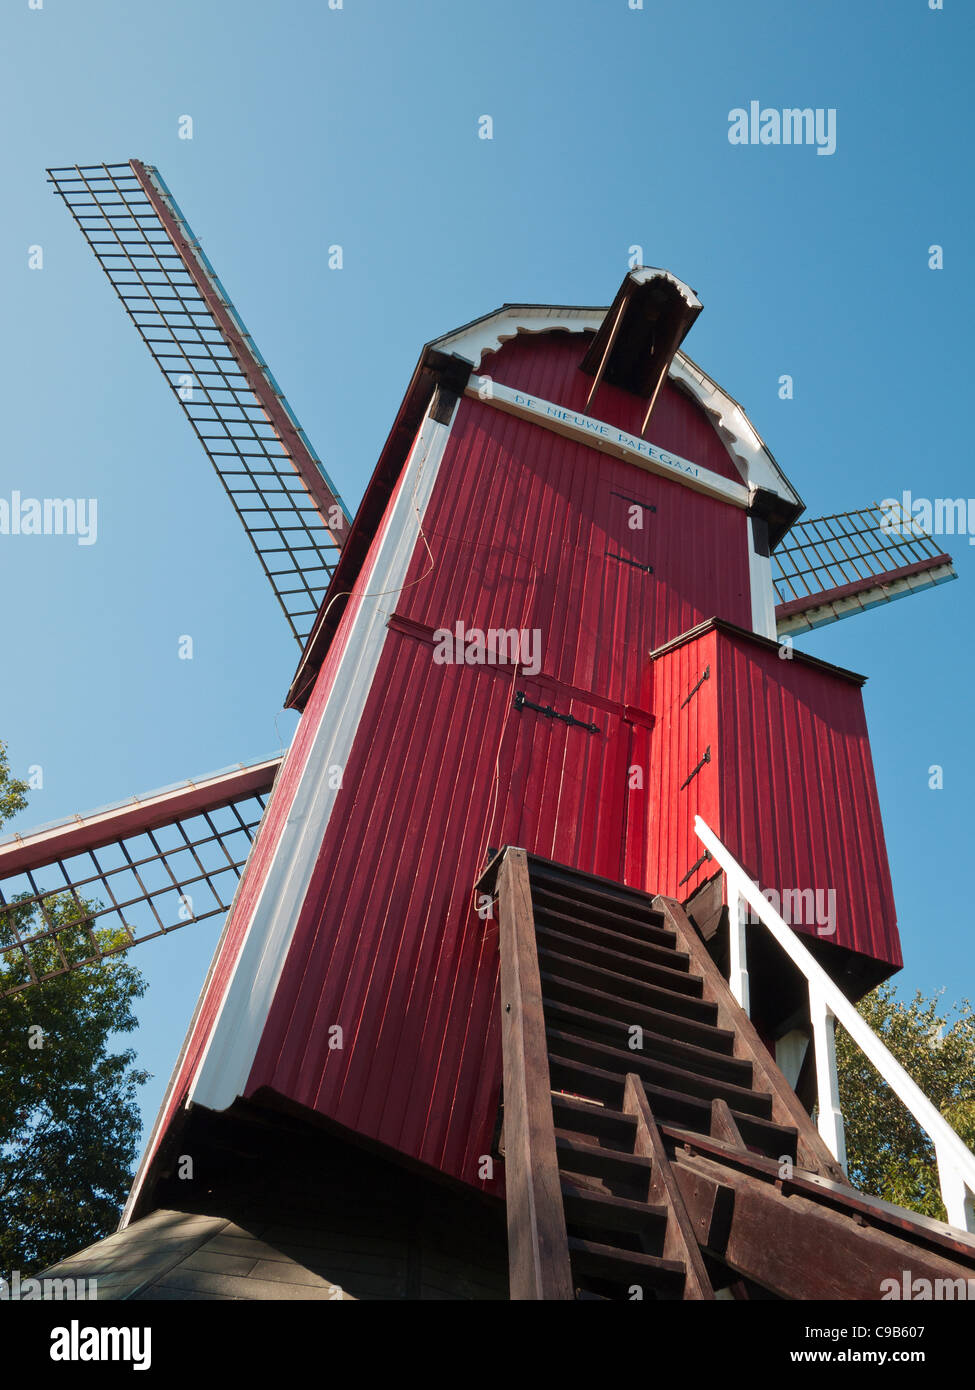 The Nieuwe Papegaai windmill, a rebuilt oil mill near the Dampoort in Bruges, Belgium - Stock Image